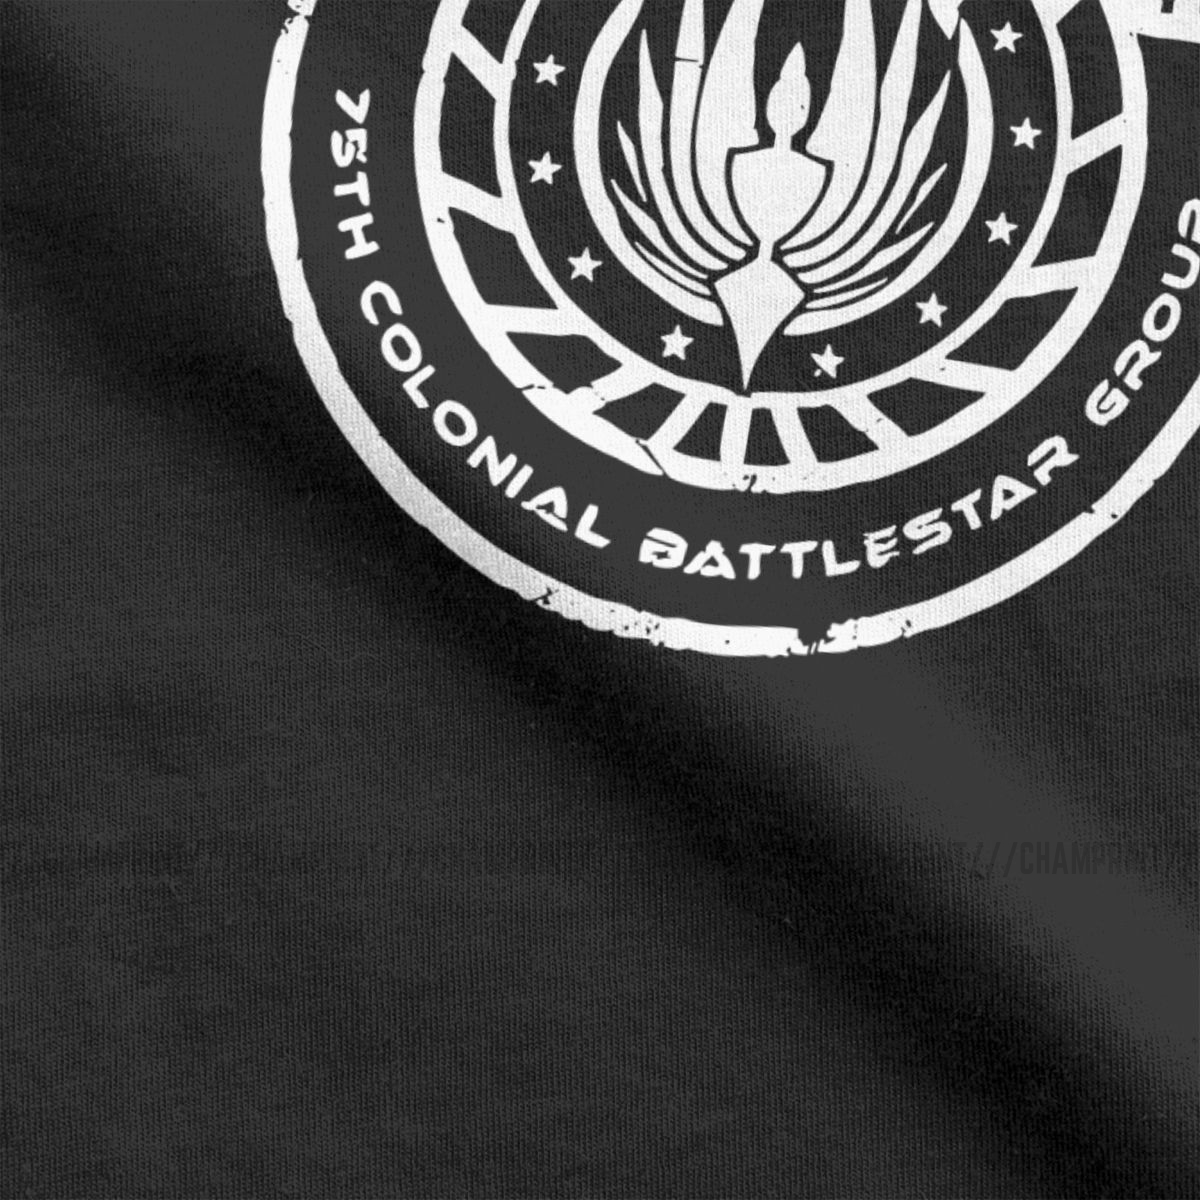 Men Galactica Bs 75 Battlestar Galactica T Shirt Dwight The Office Bears Cotton Short Sleeve Tees Birthday Present T-Shirts